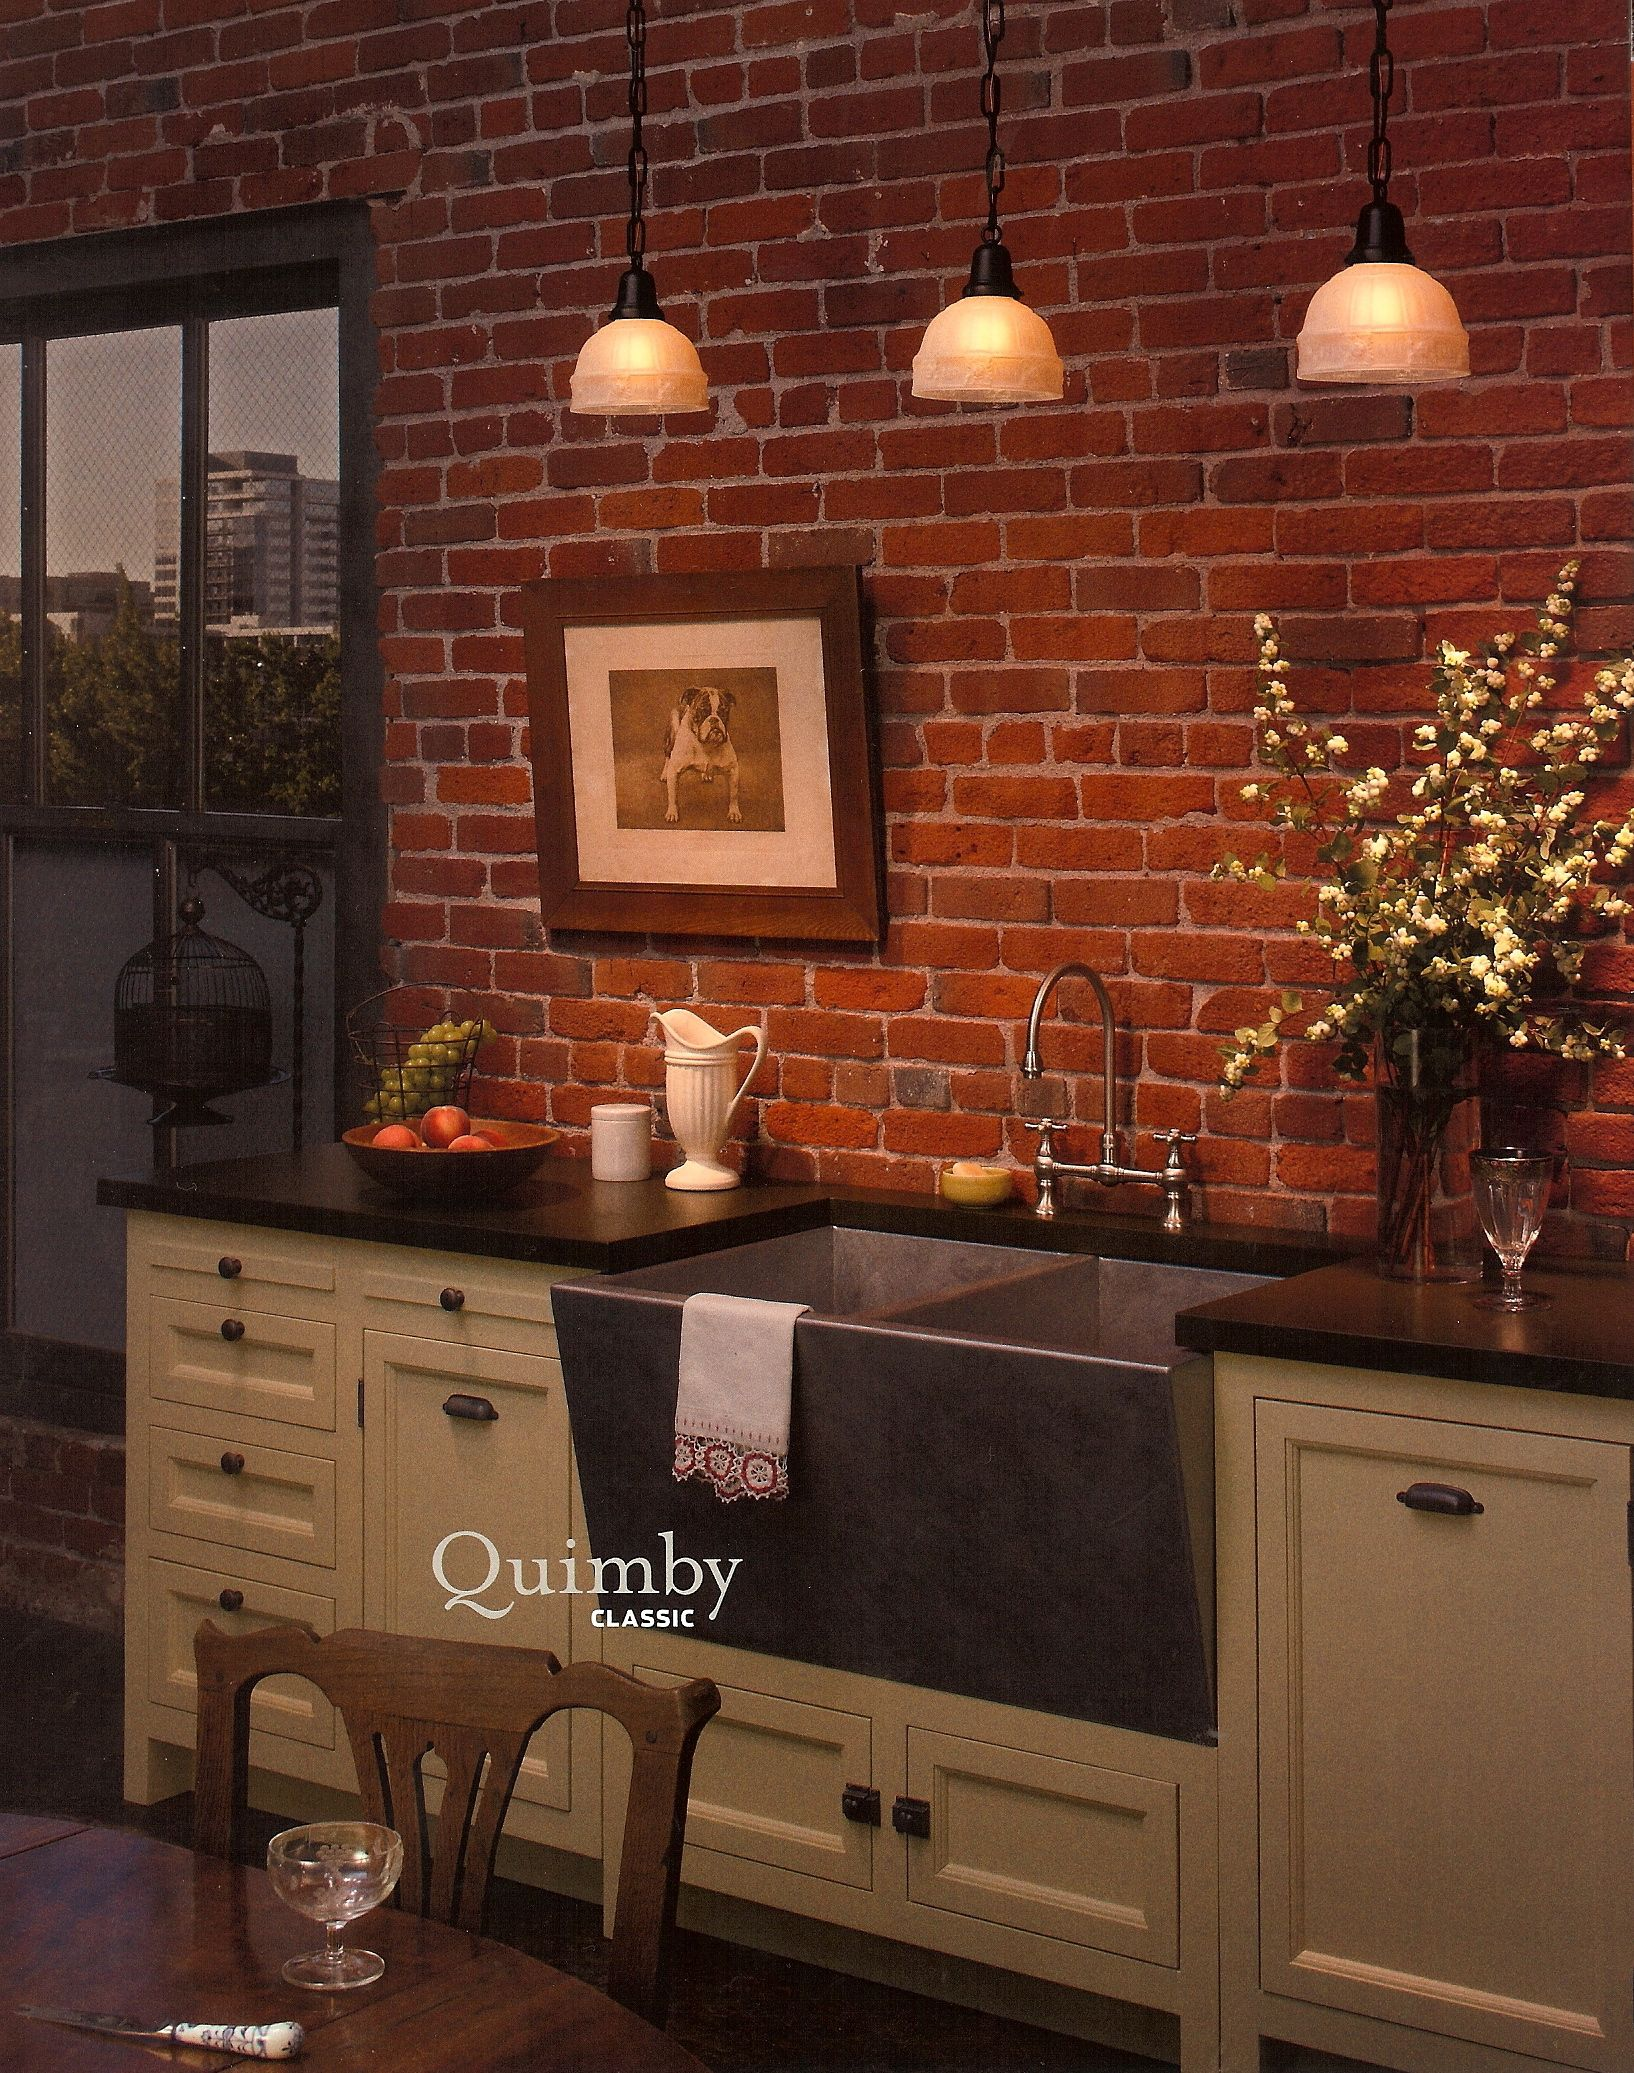 Exposed brick kitchen decorating ideas rooms that i love for Exposed brick kitchen ideas